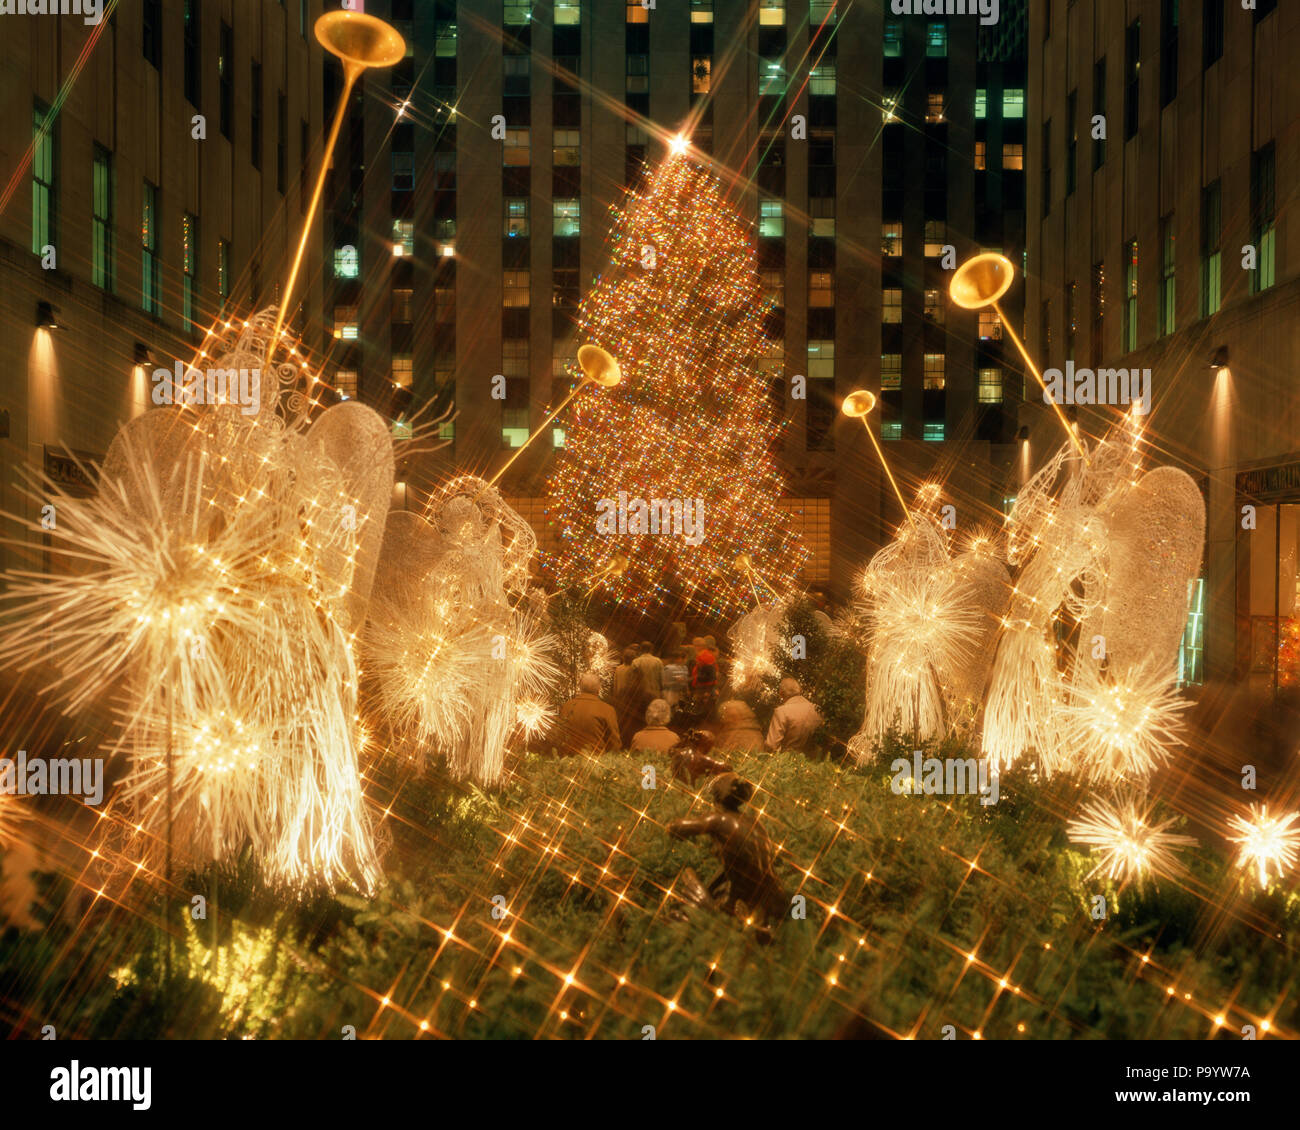 1980s Christmas Tree Stock Photos & 1980s Christmas Tree Stock ...